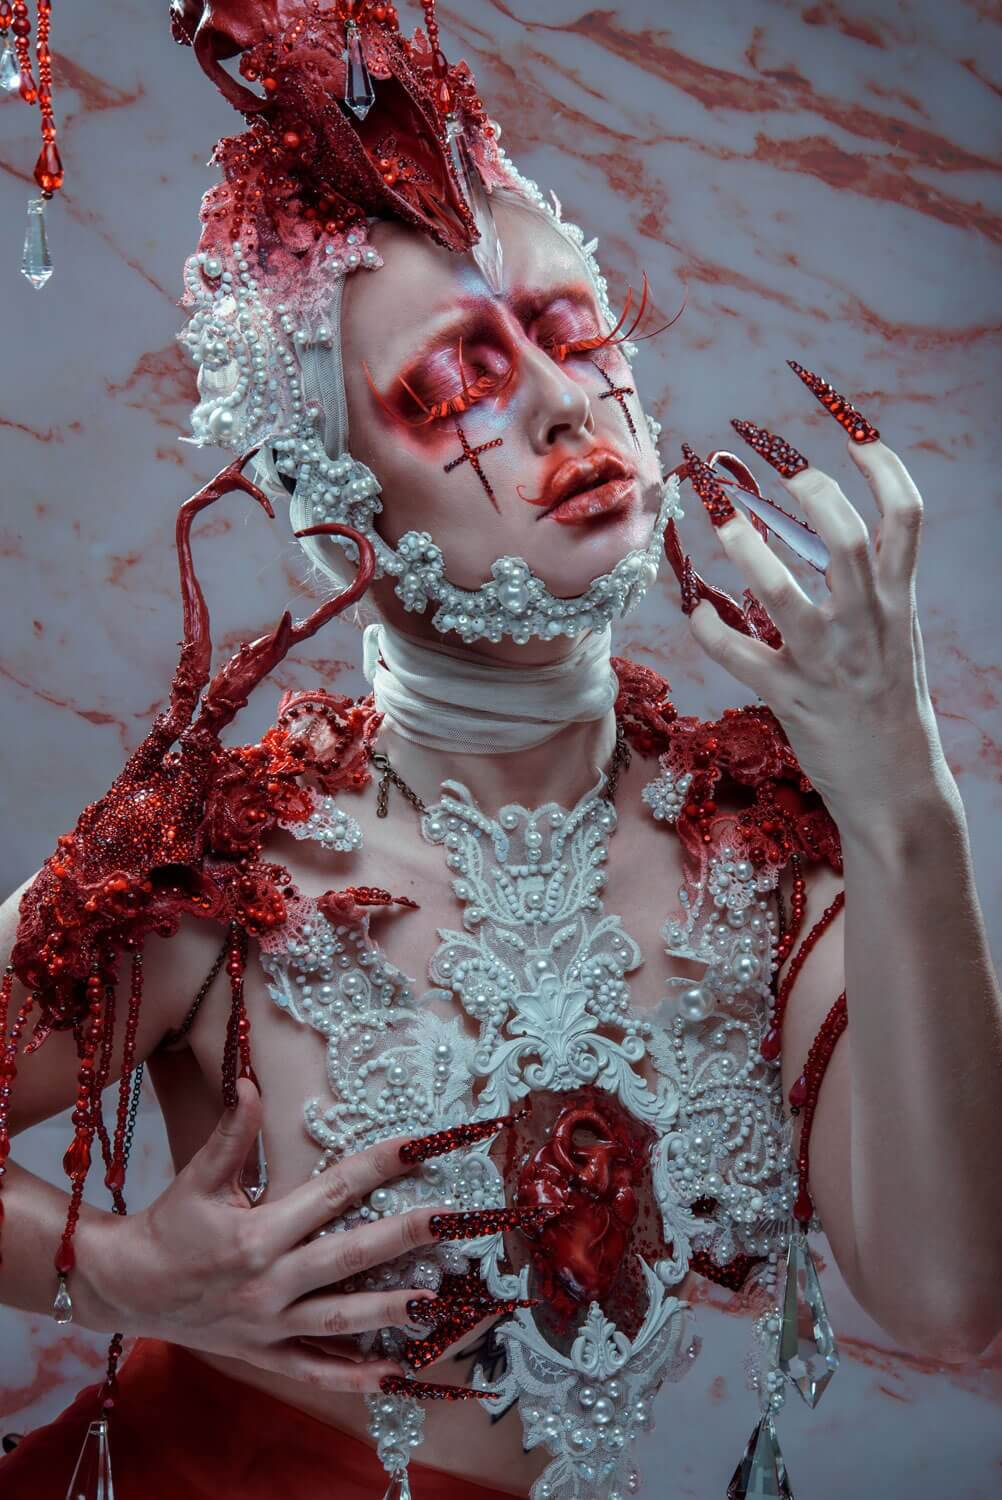 michael hussar inspired make-up and costume - candy makeup artist